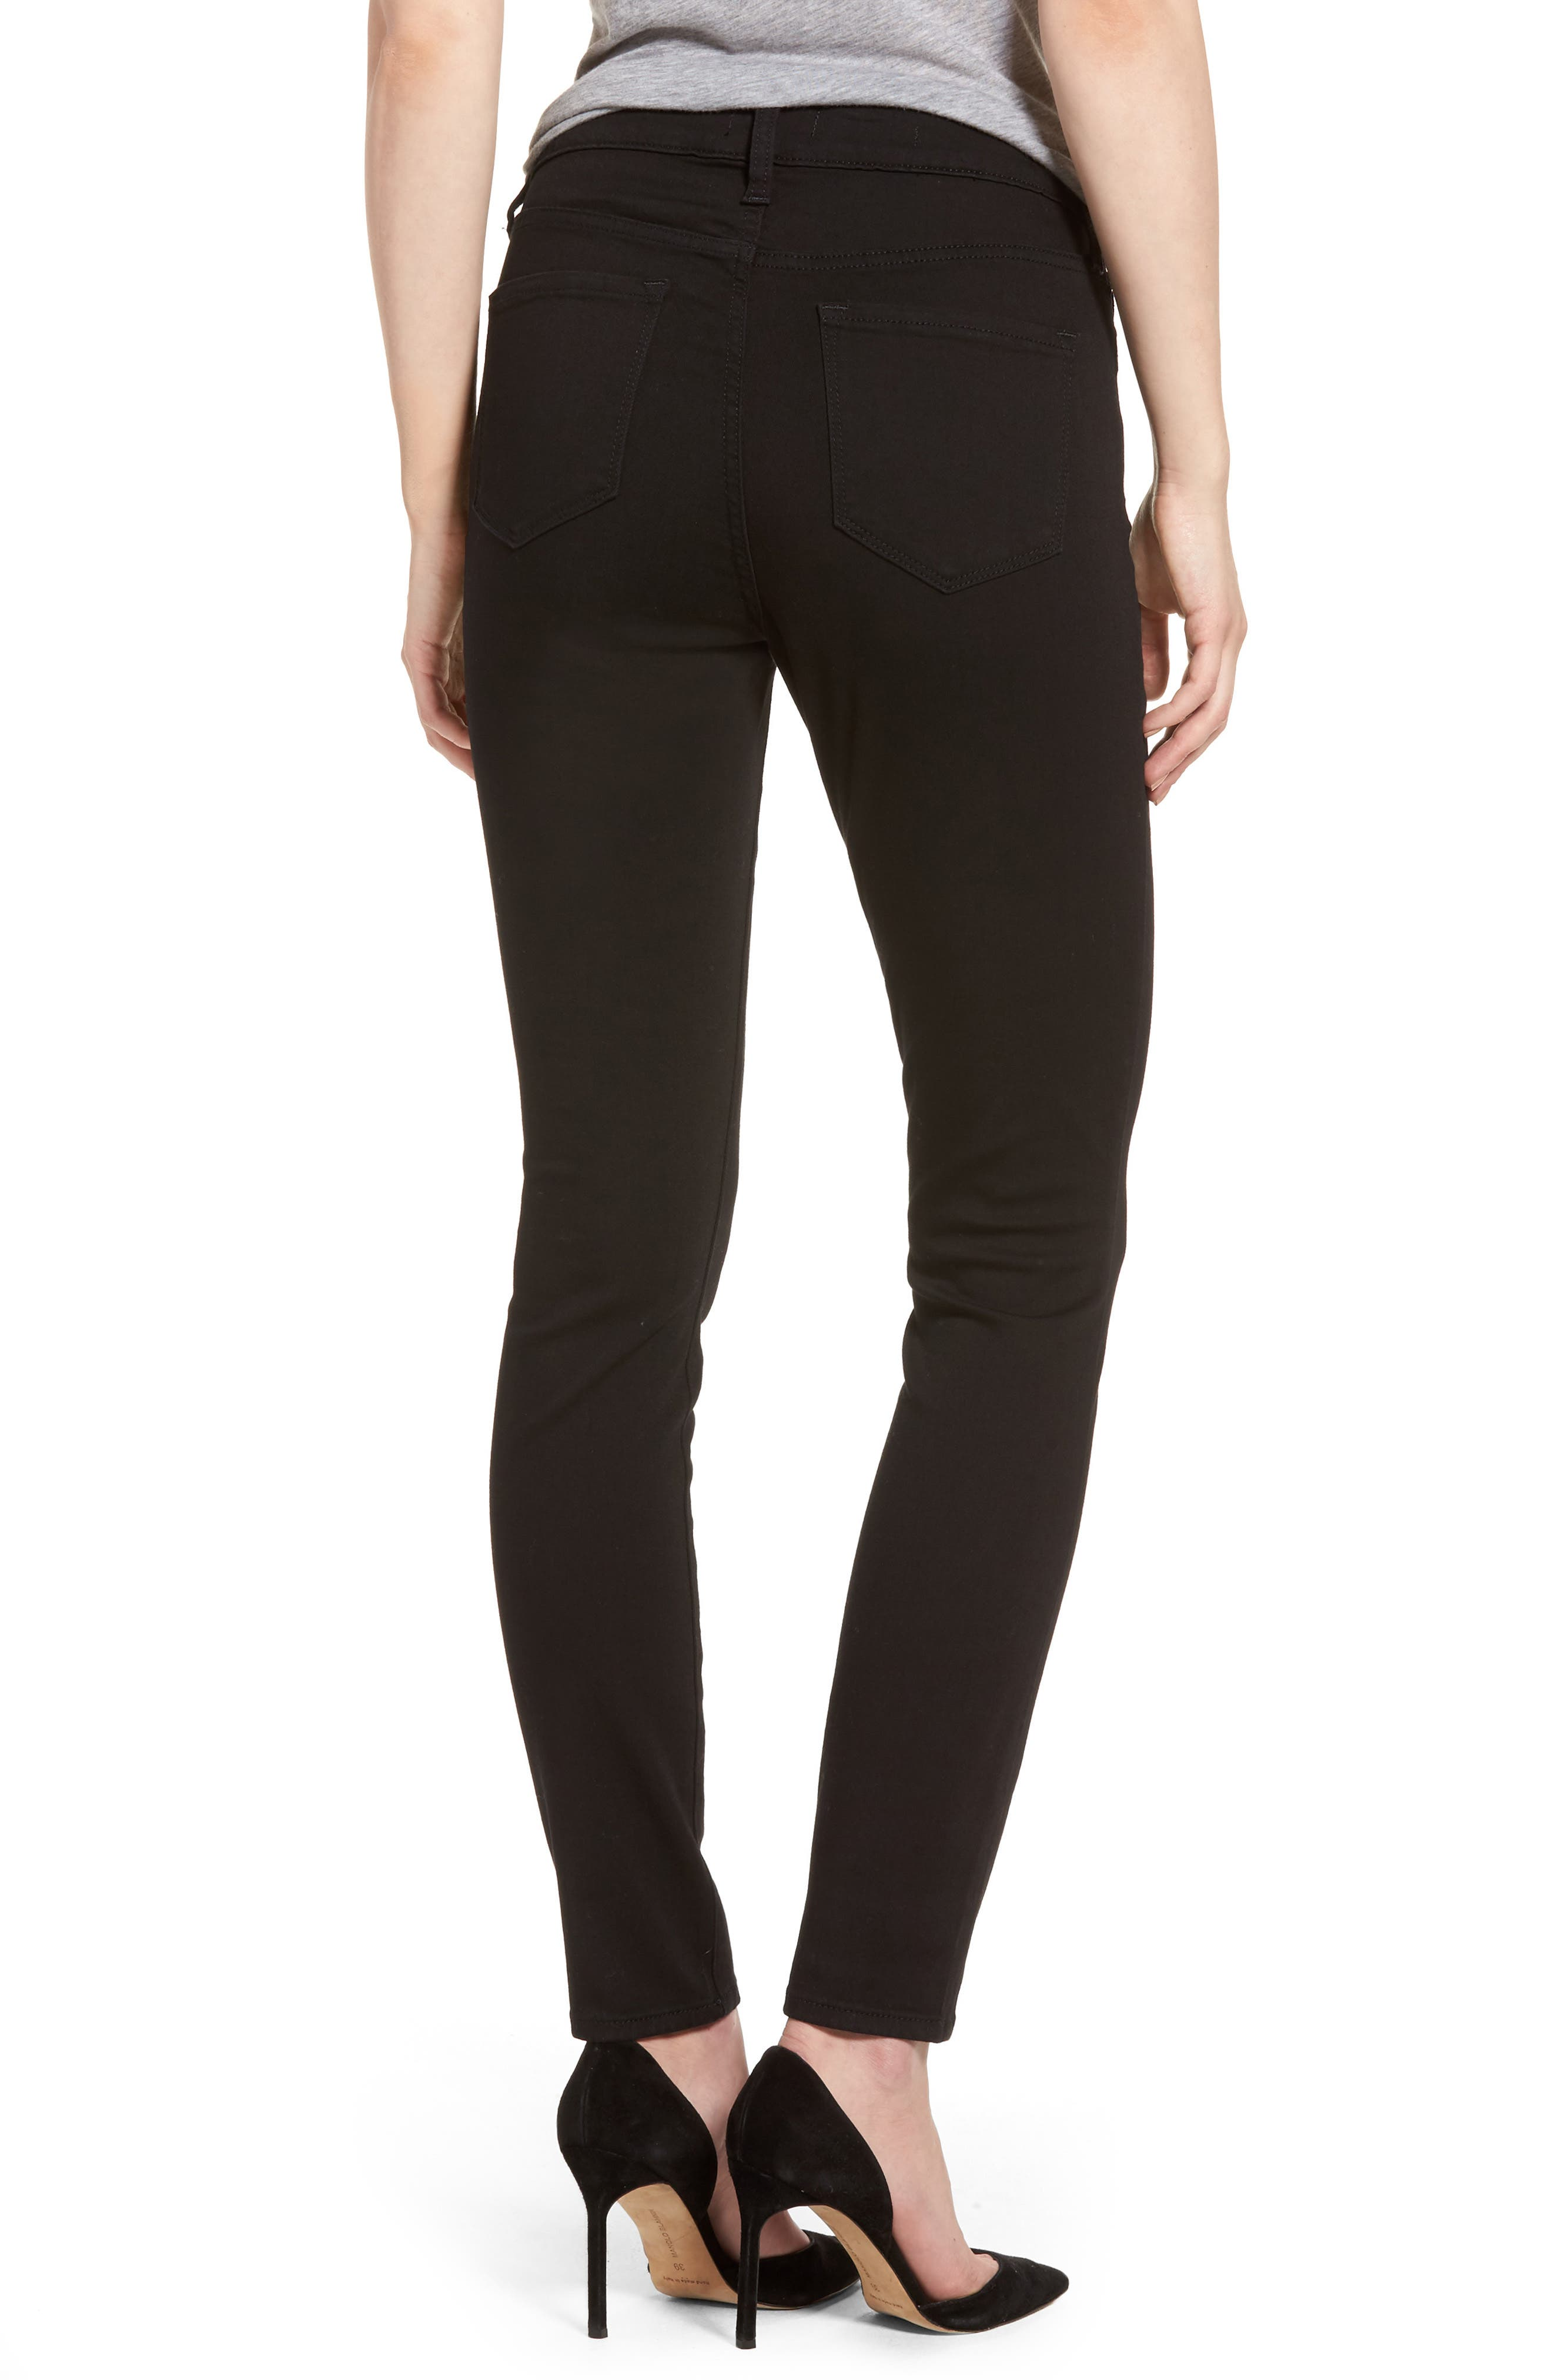 Ami Stretch Skinny Jeans,                             Alternate thumbnail 2, color,                             Black